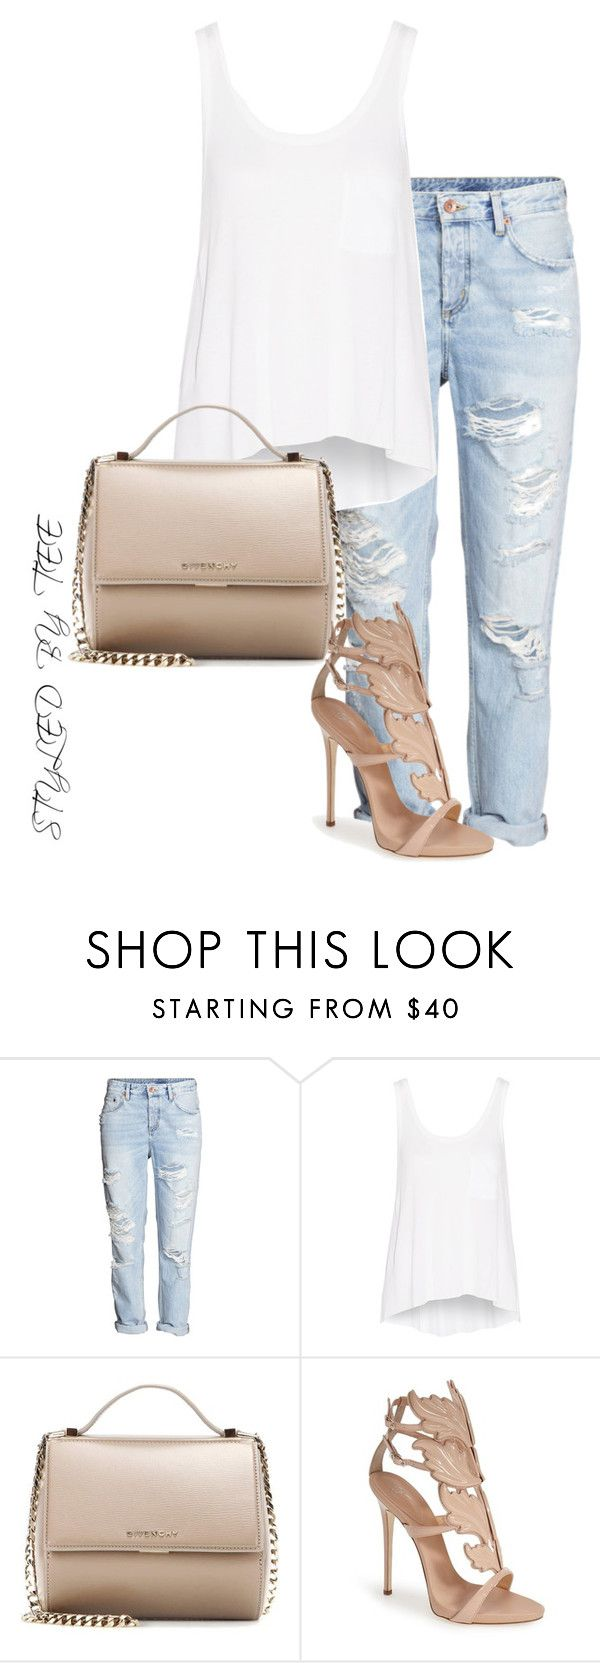 """Untitled #97"" by toniannfratianni on Polyvore featuring H&M, rag & bone, Givenchy, Giuseppe Zanotti, women's clothing, women, female, woman, misses and juniors"